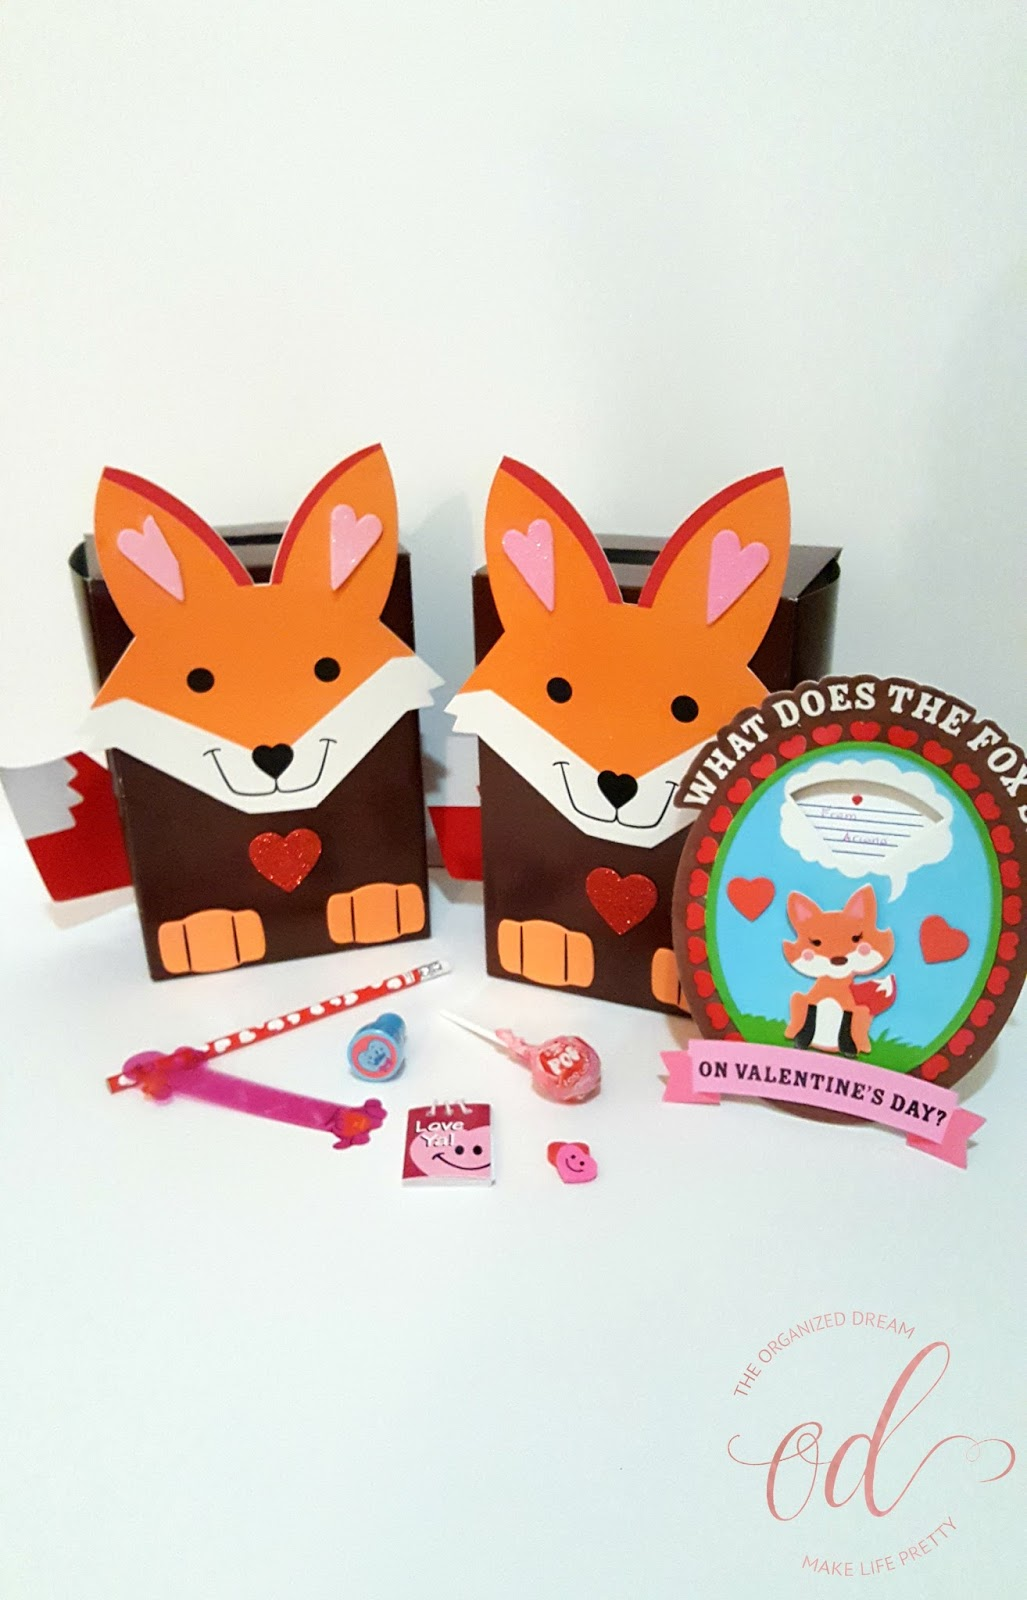 Fun Foxy Valentines Day Goodie Boxes The Organized Dream